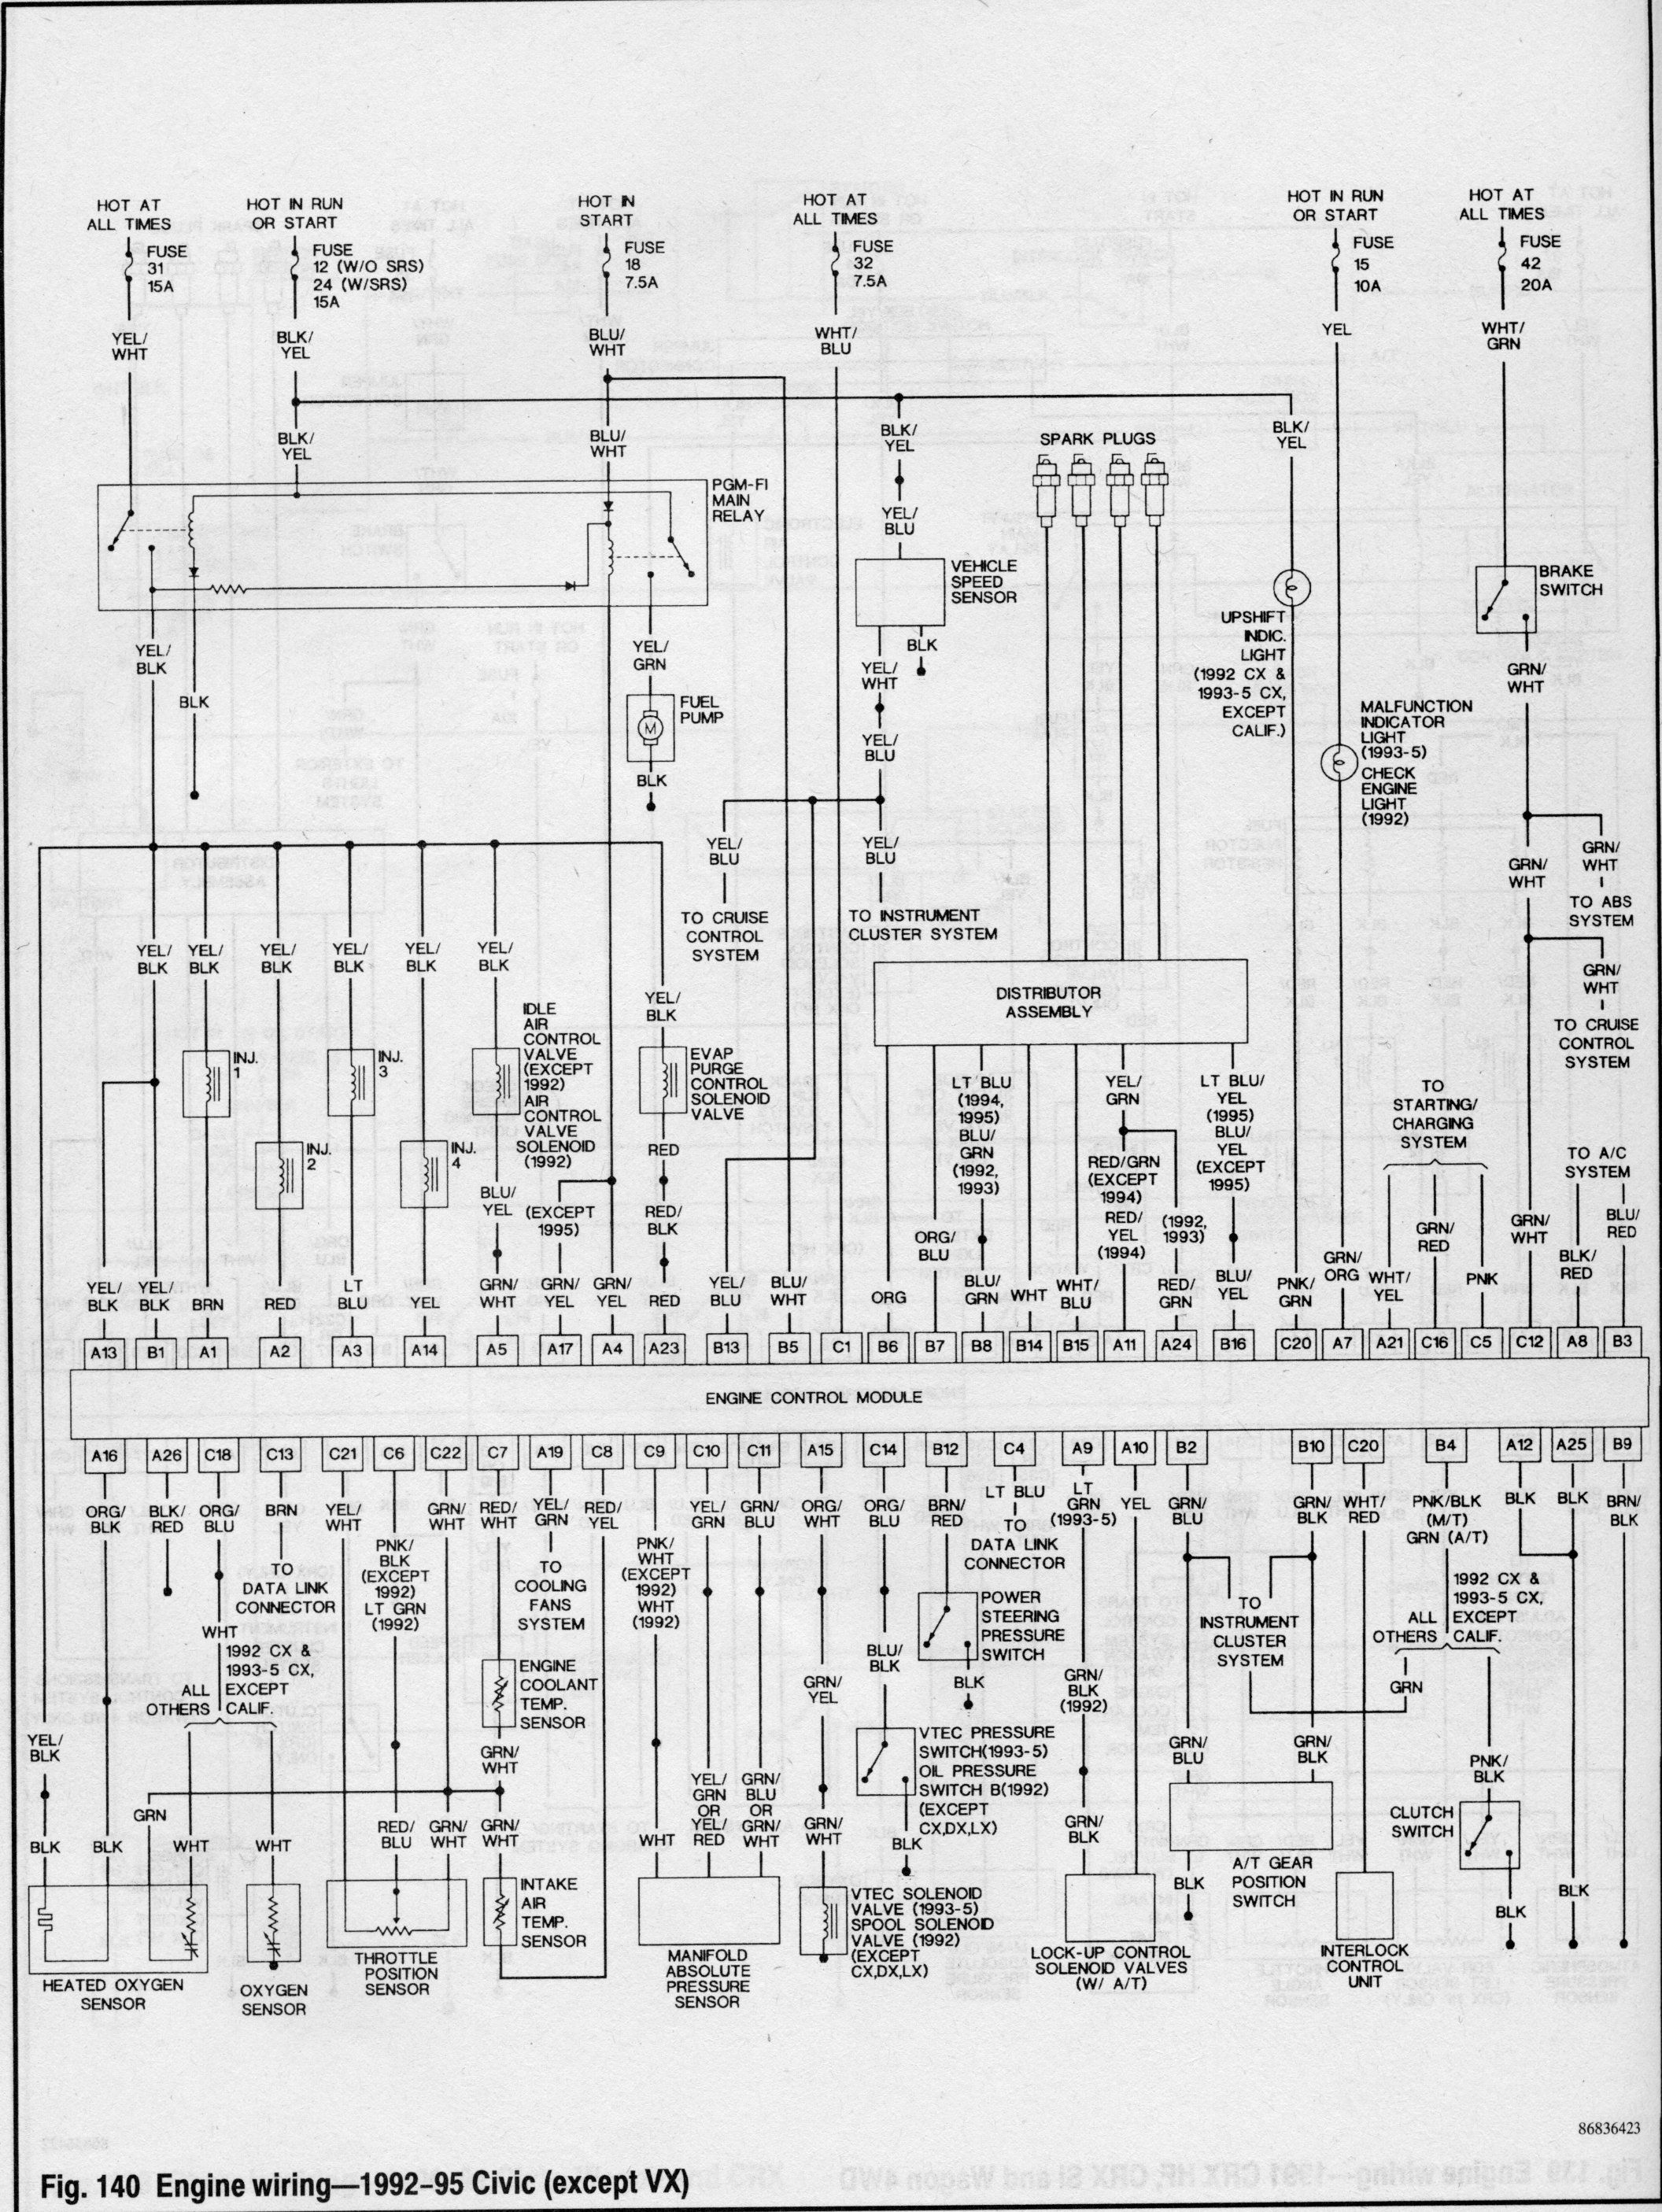 dc2 gsr engine wiring diagram